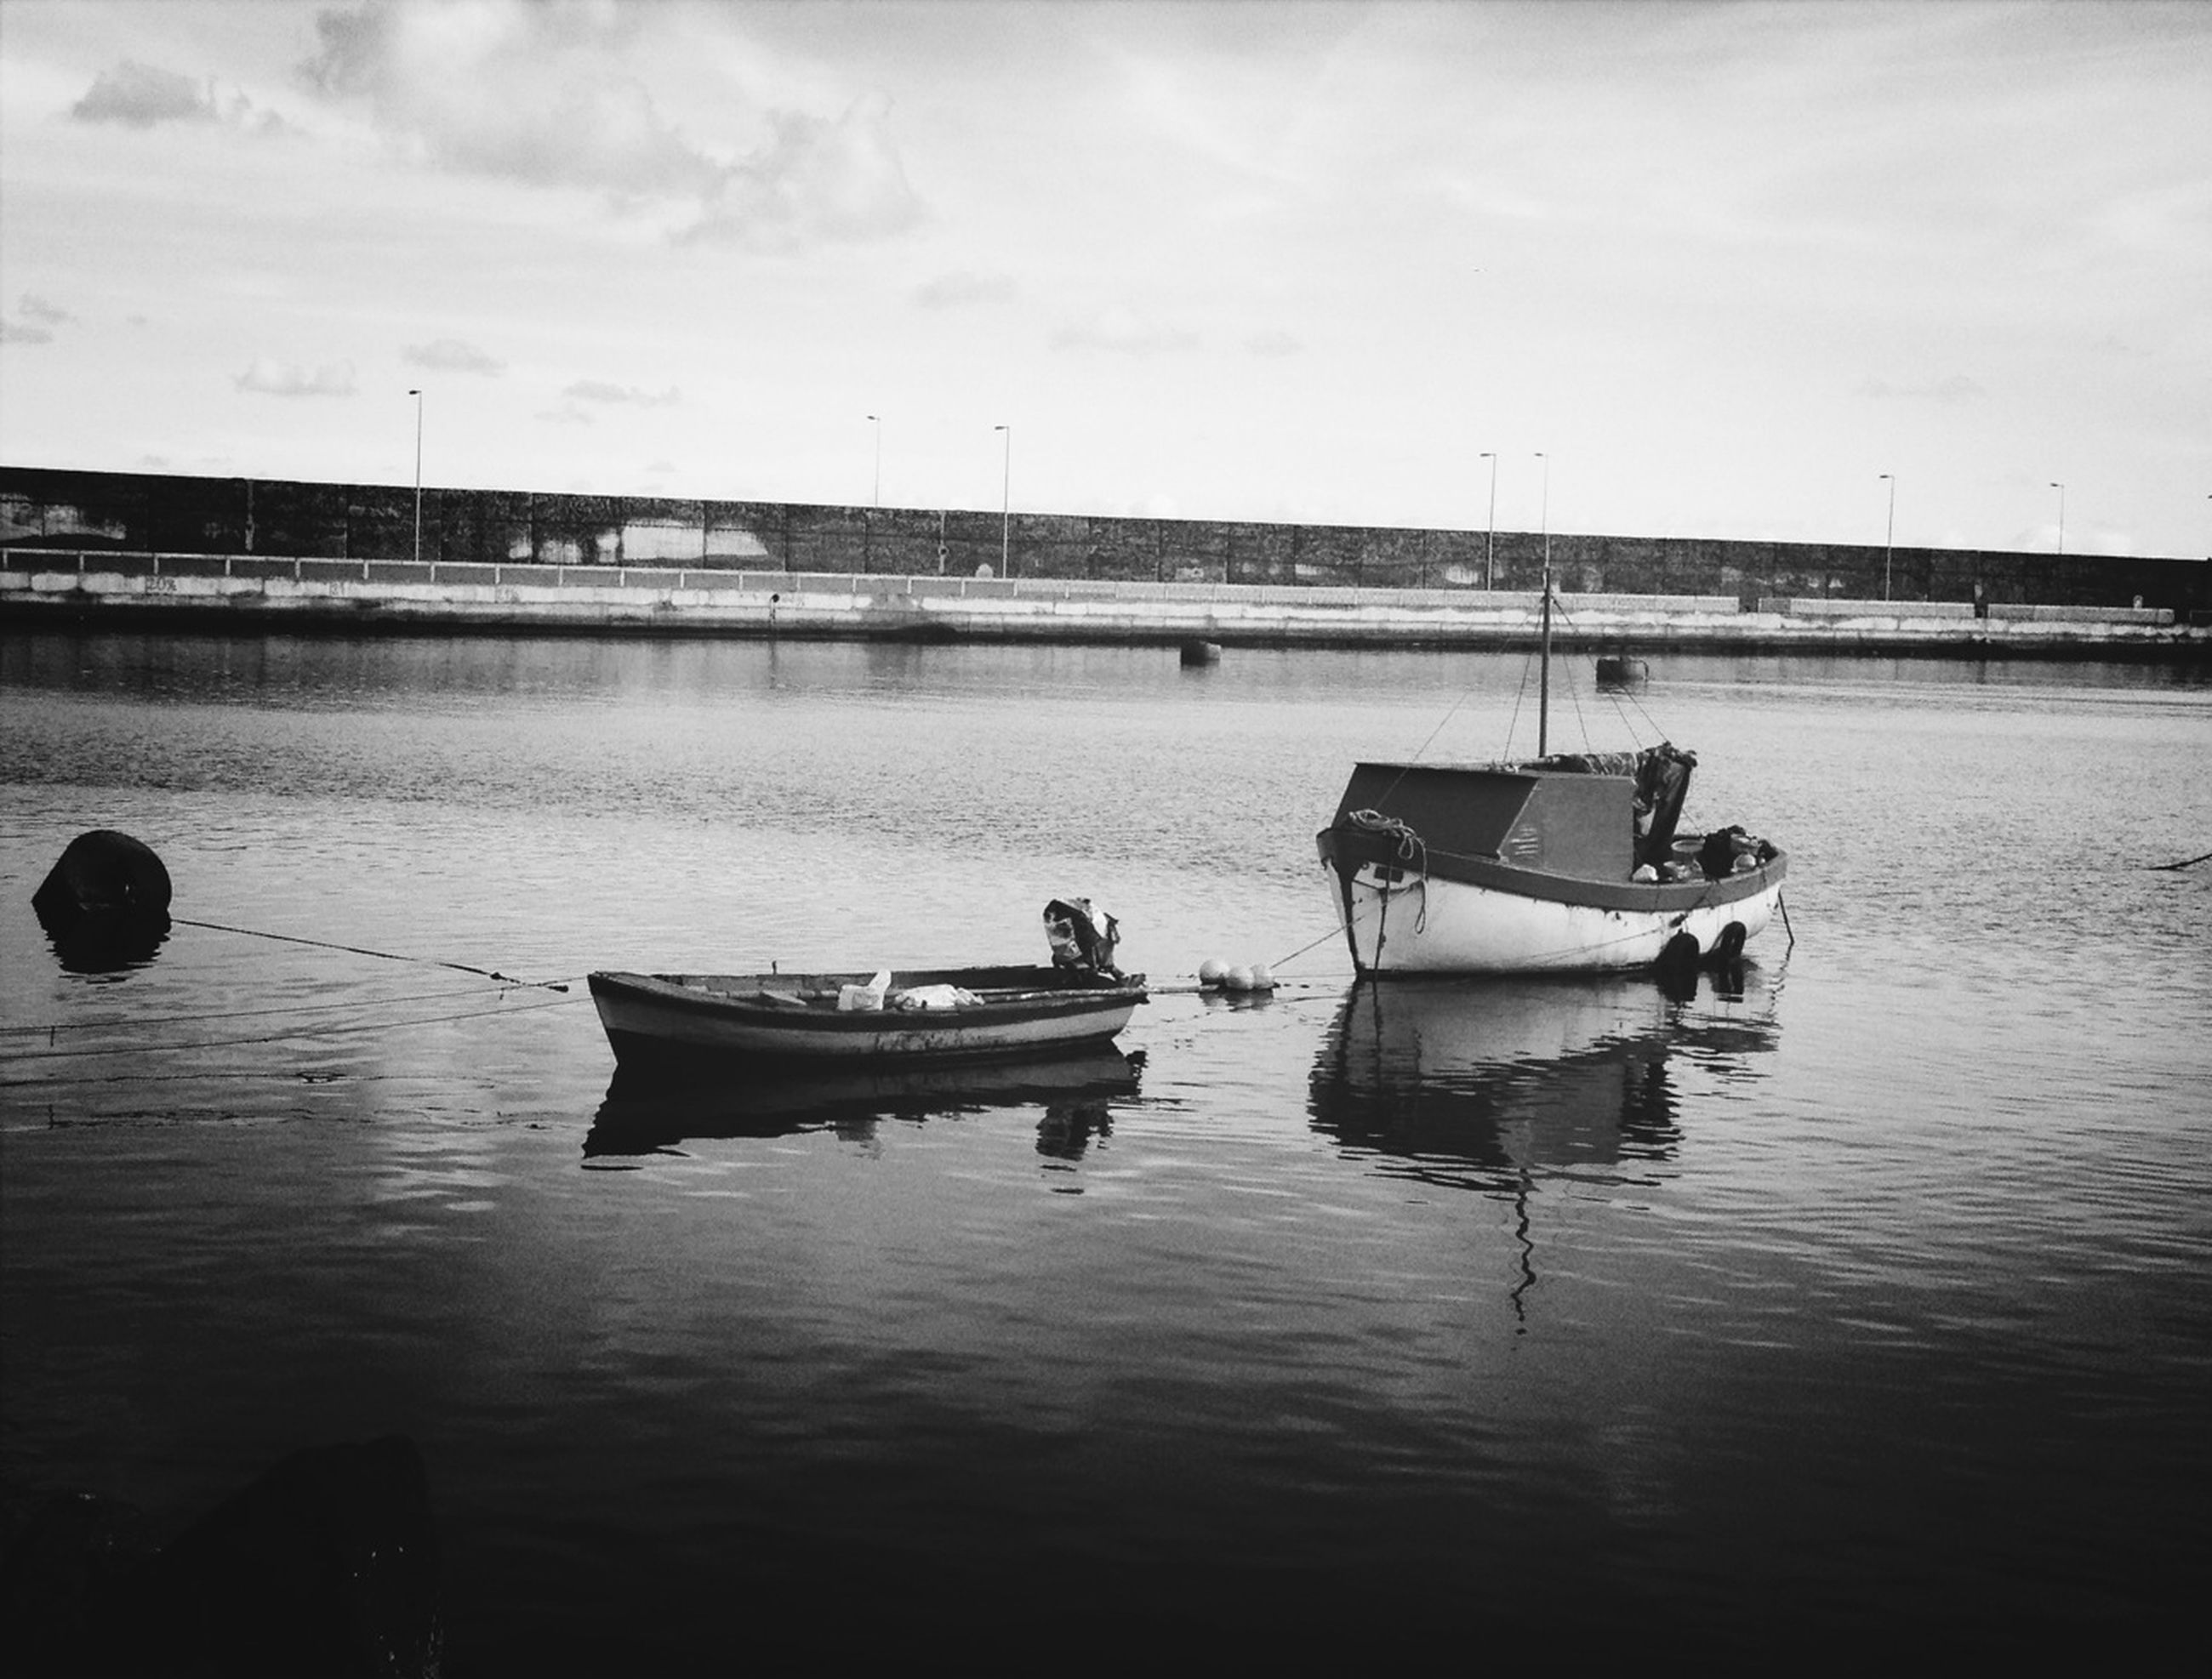 nautical vessel, transportation, boat, water, mode of transport, moored, sea, sky, waterfront, tranquility, tranquil scene, travel, nature, outdoors, river, day, rippled, reflection, pier, beauty in nature